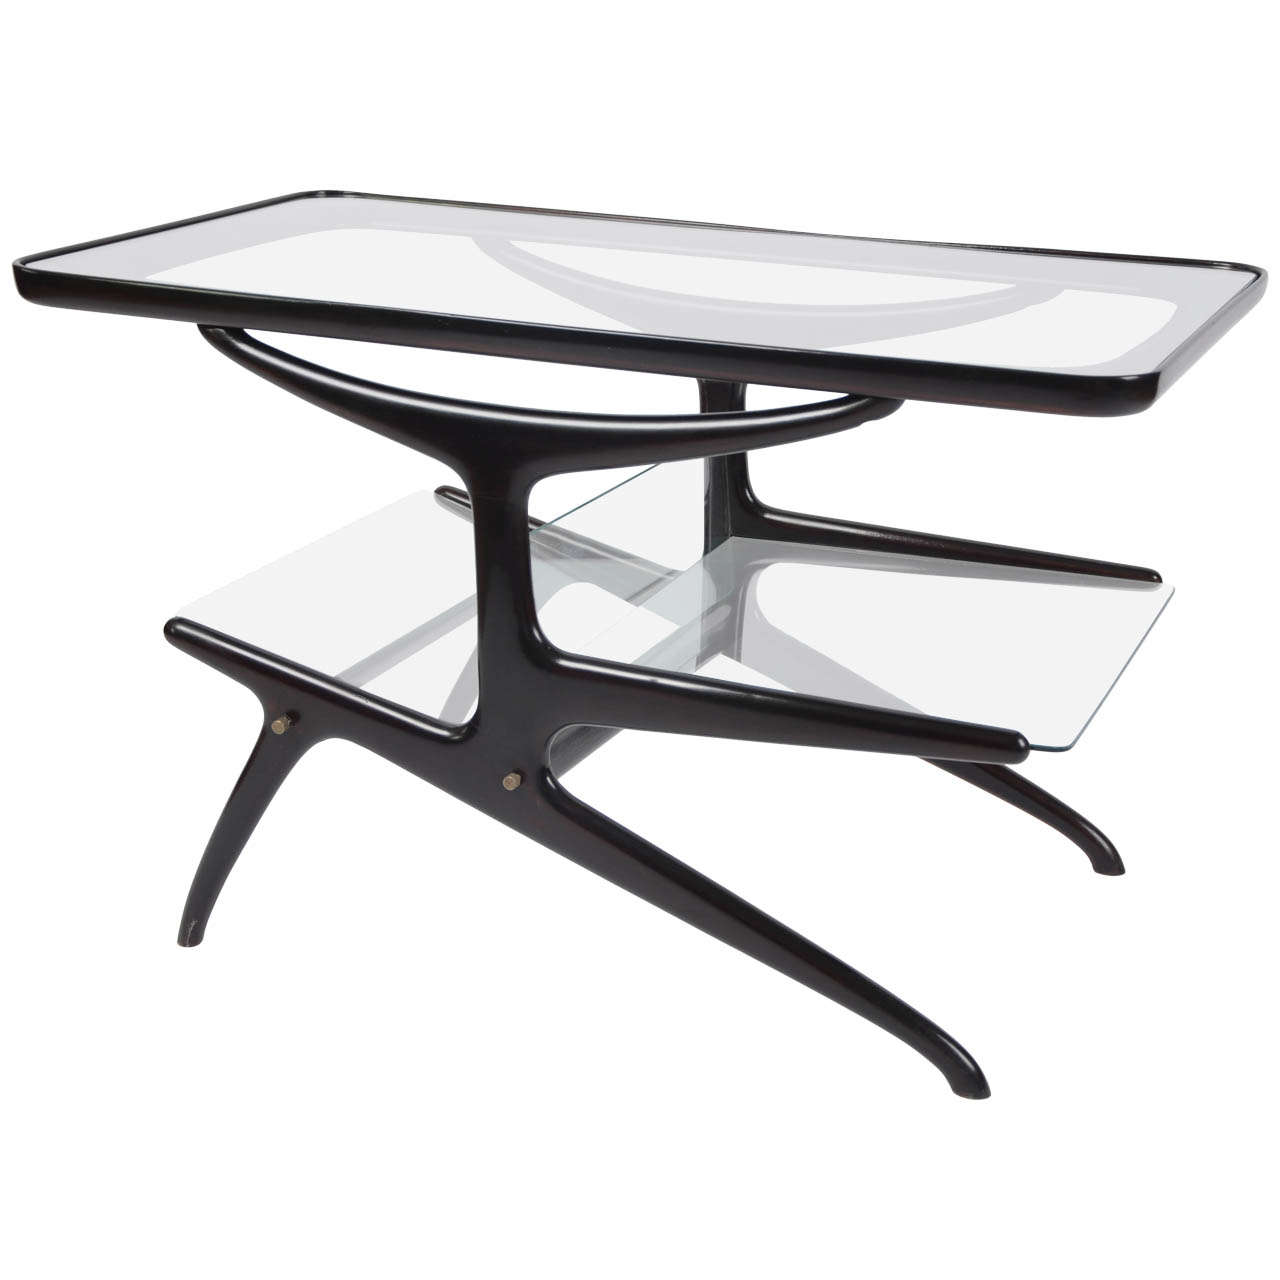 Wonderful image of Coffee Table with Magazine Rack at 1stdibs with #51575D color and 1280x1280 pixels